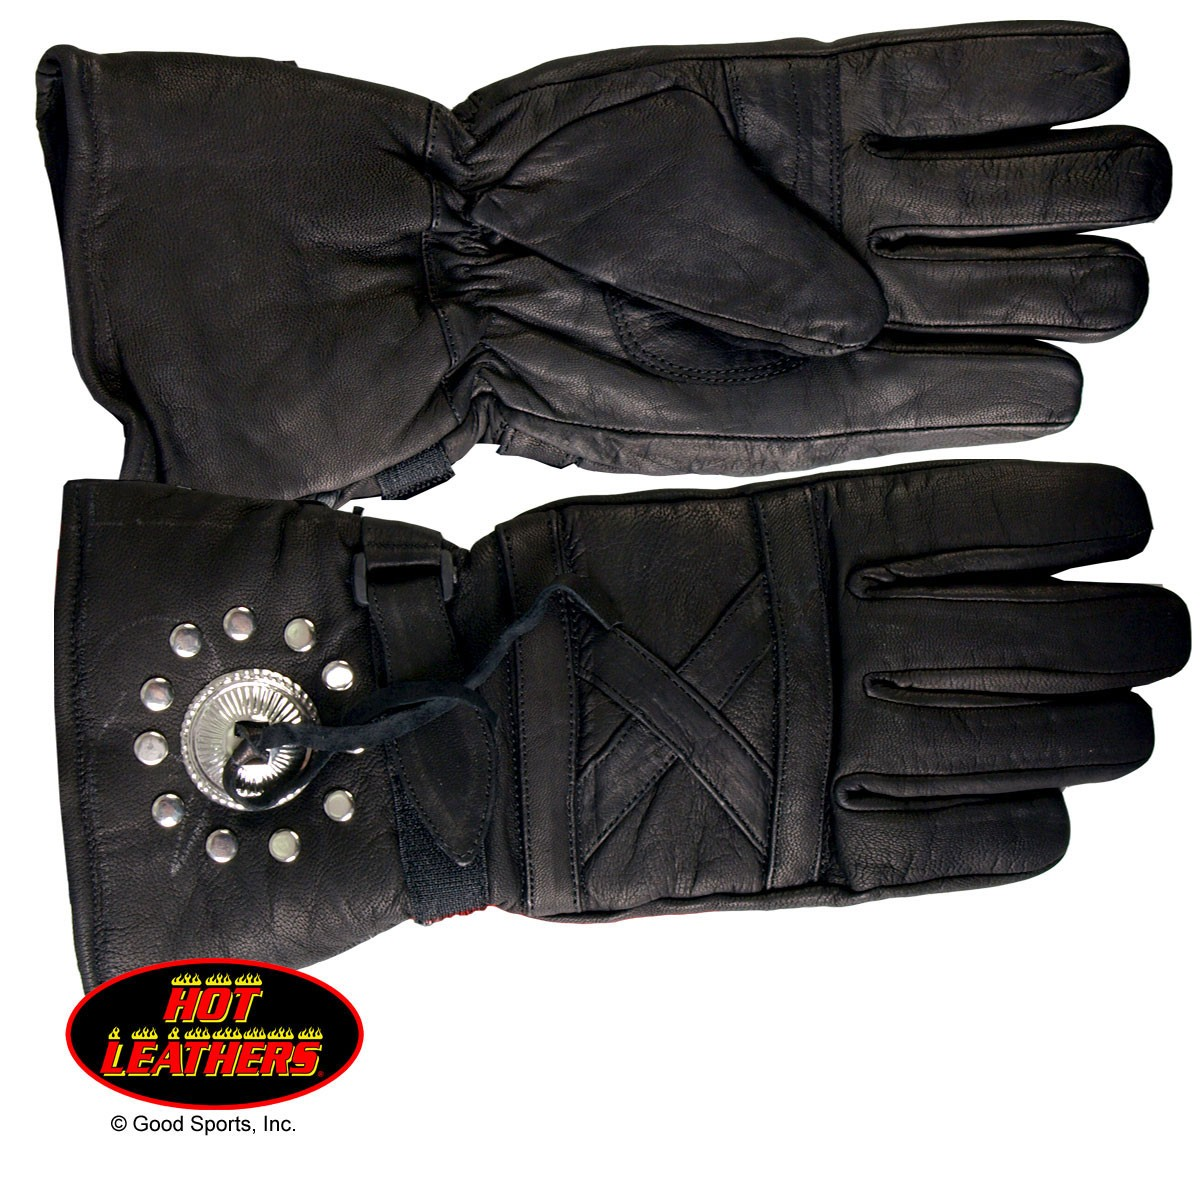 Hot Leathers Leather Gauntlet Glove